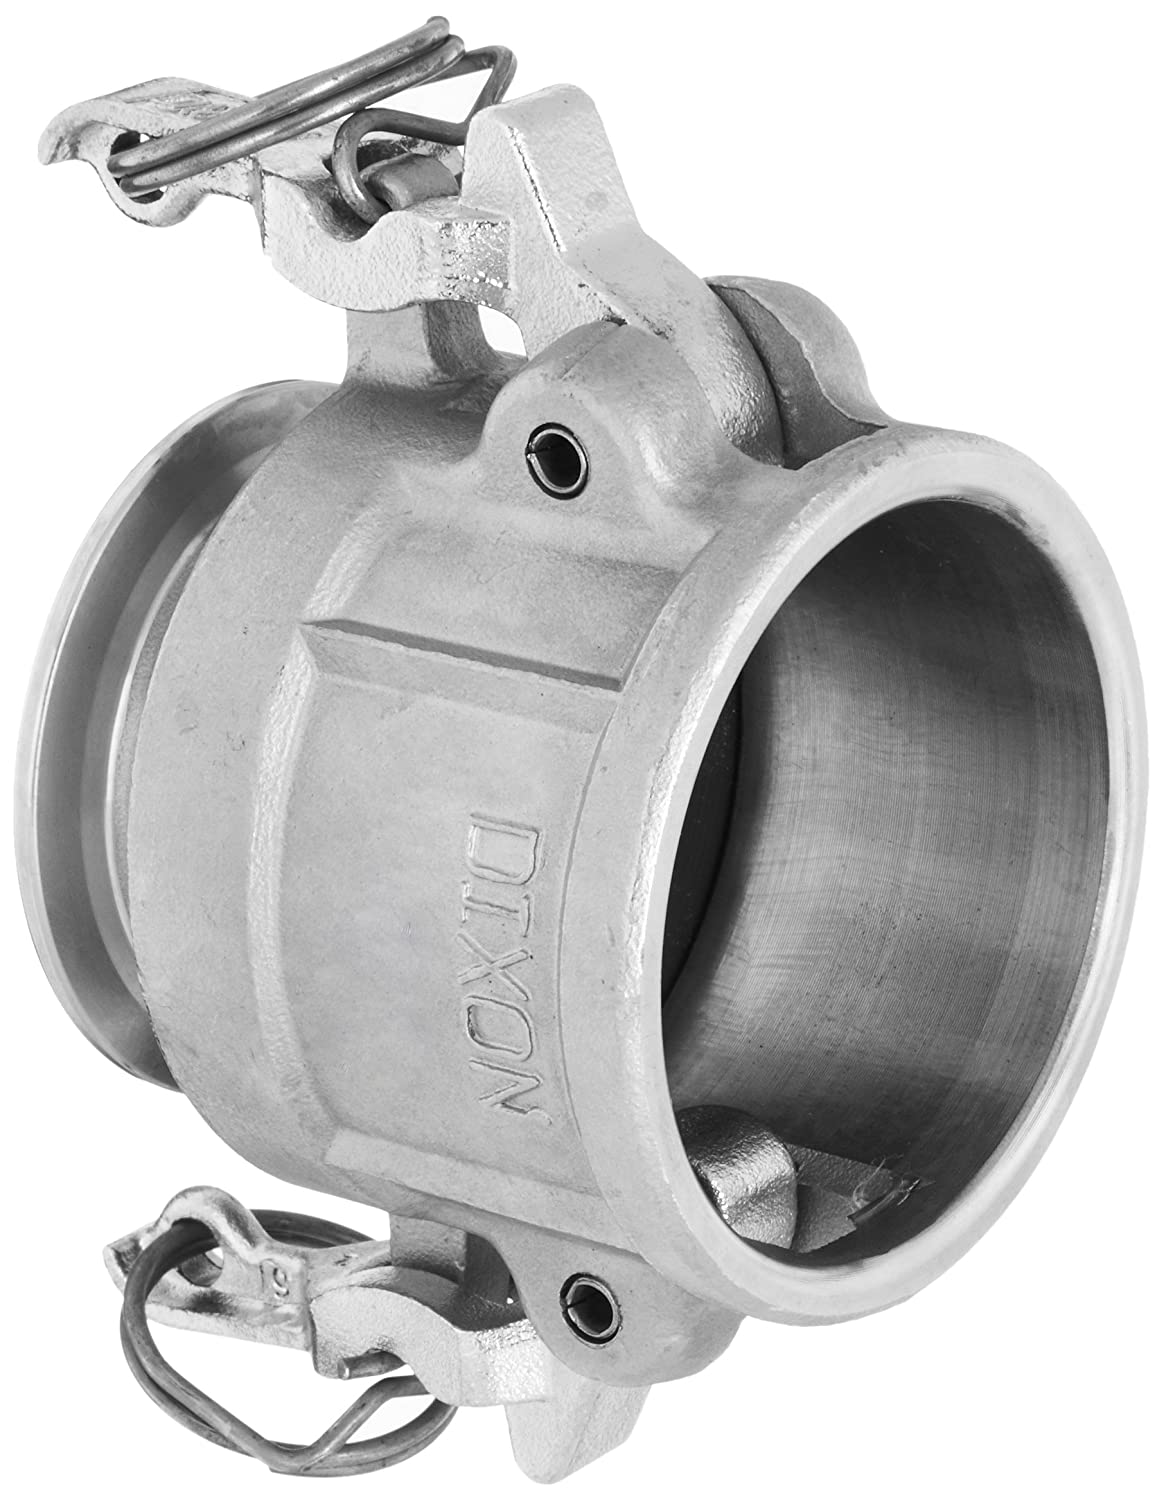 1-1//2 Plug x 1-1//2 Clamp End Dixon RE150SE Stainless Steel 316 Cam and Groove Transition Sanitary Hose Fitting